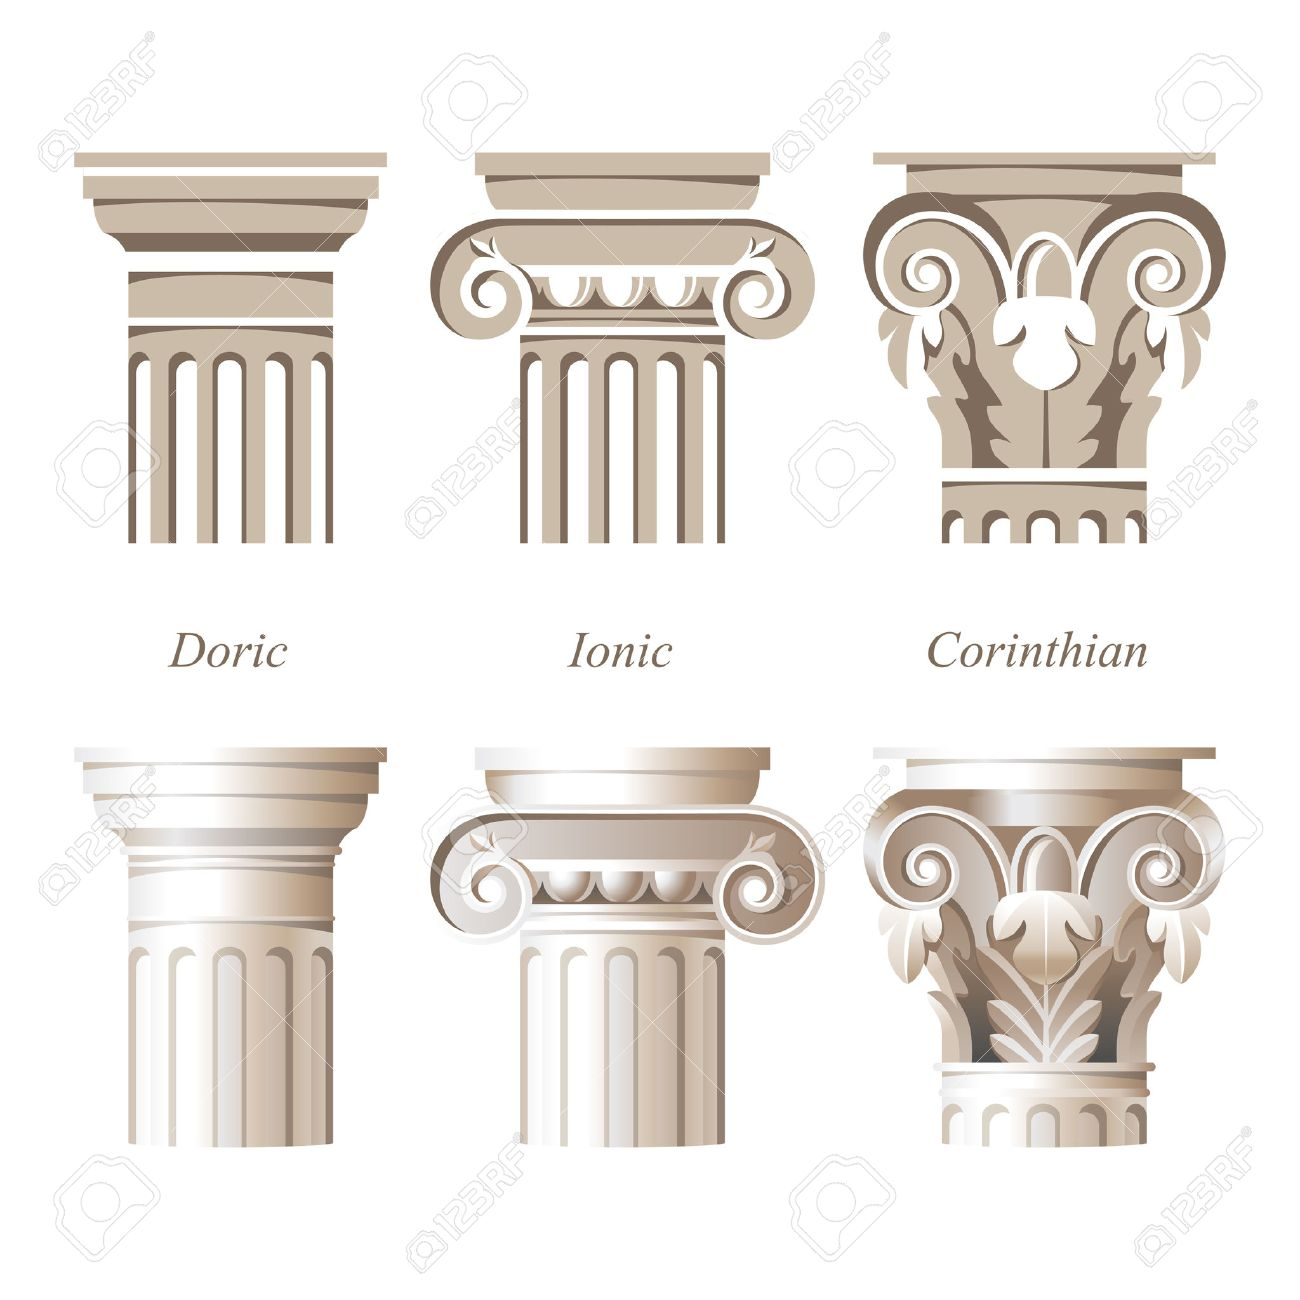 Stylized nd ealistic olumns In Different Styles - Ionic, Doric ... - ^